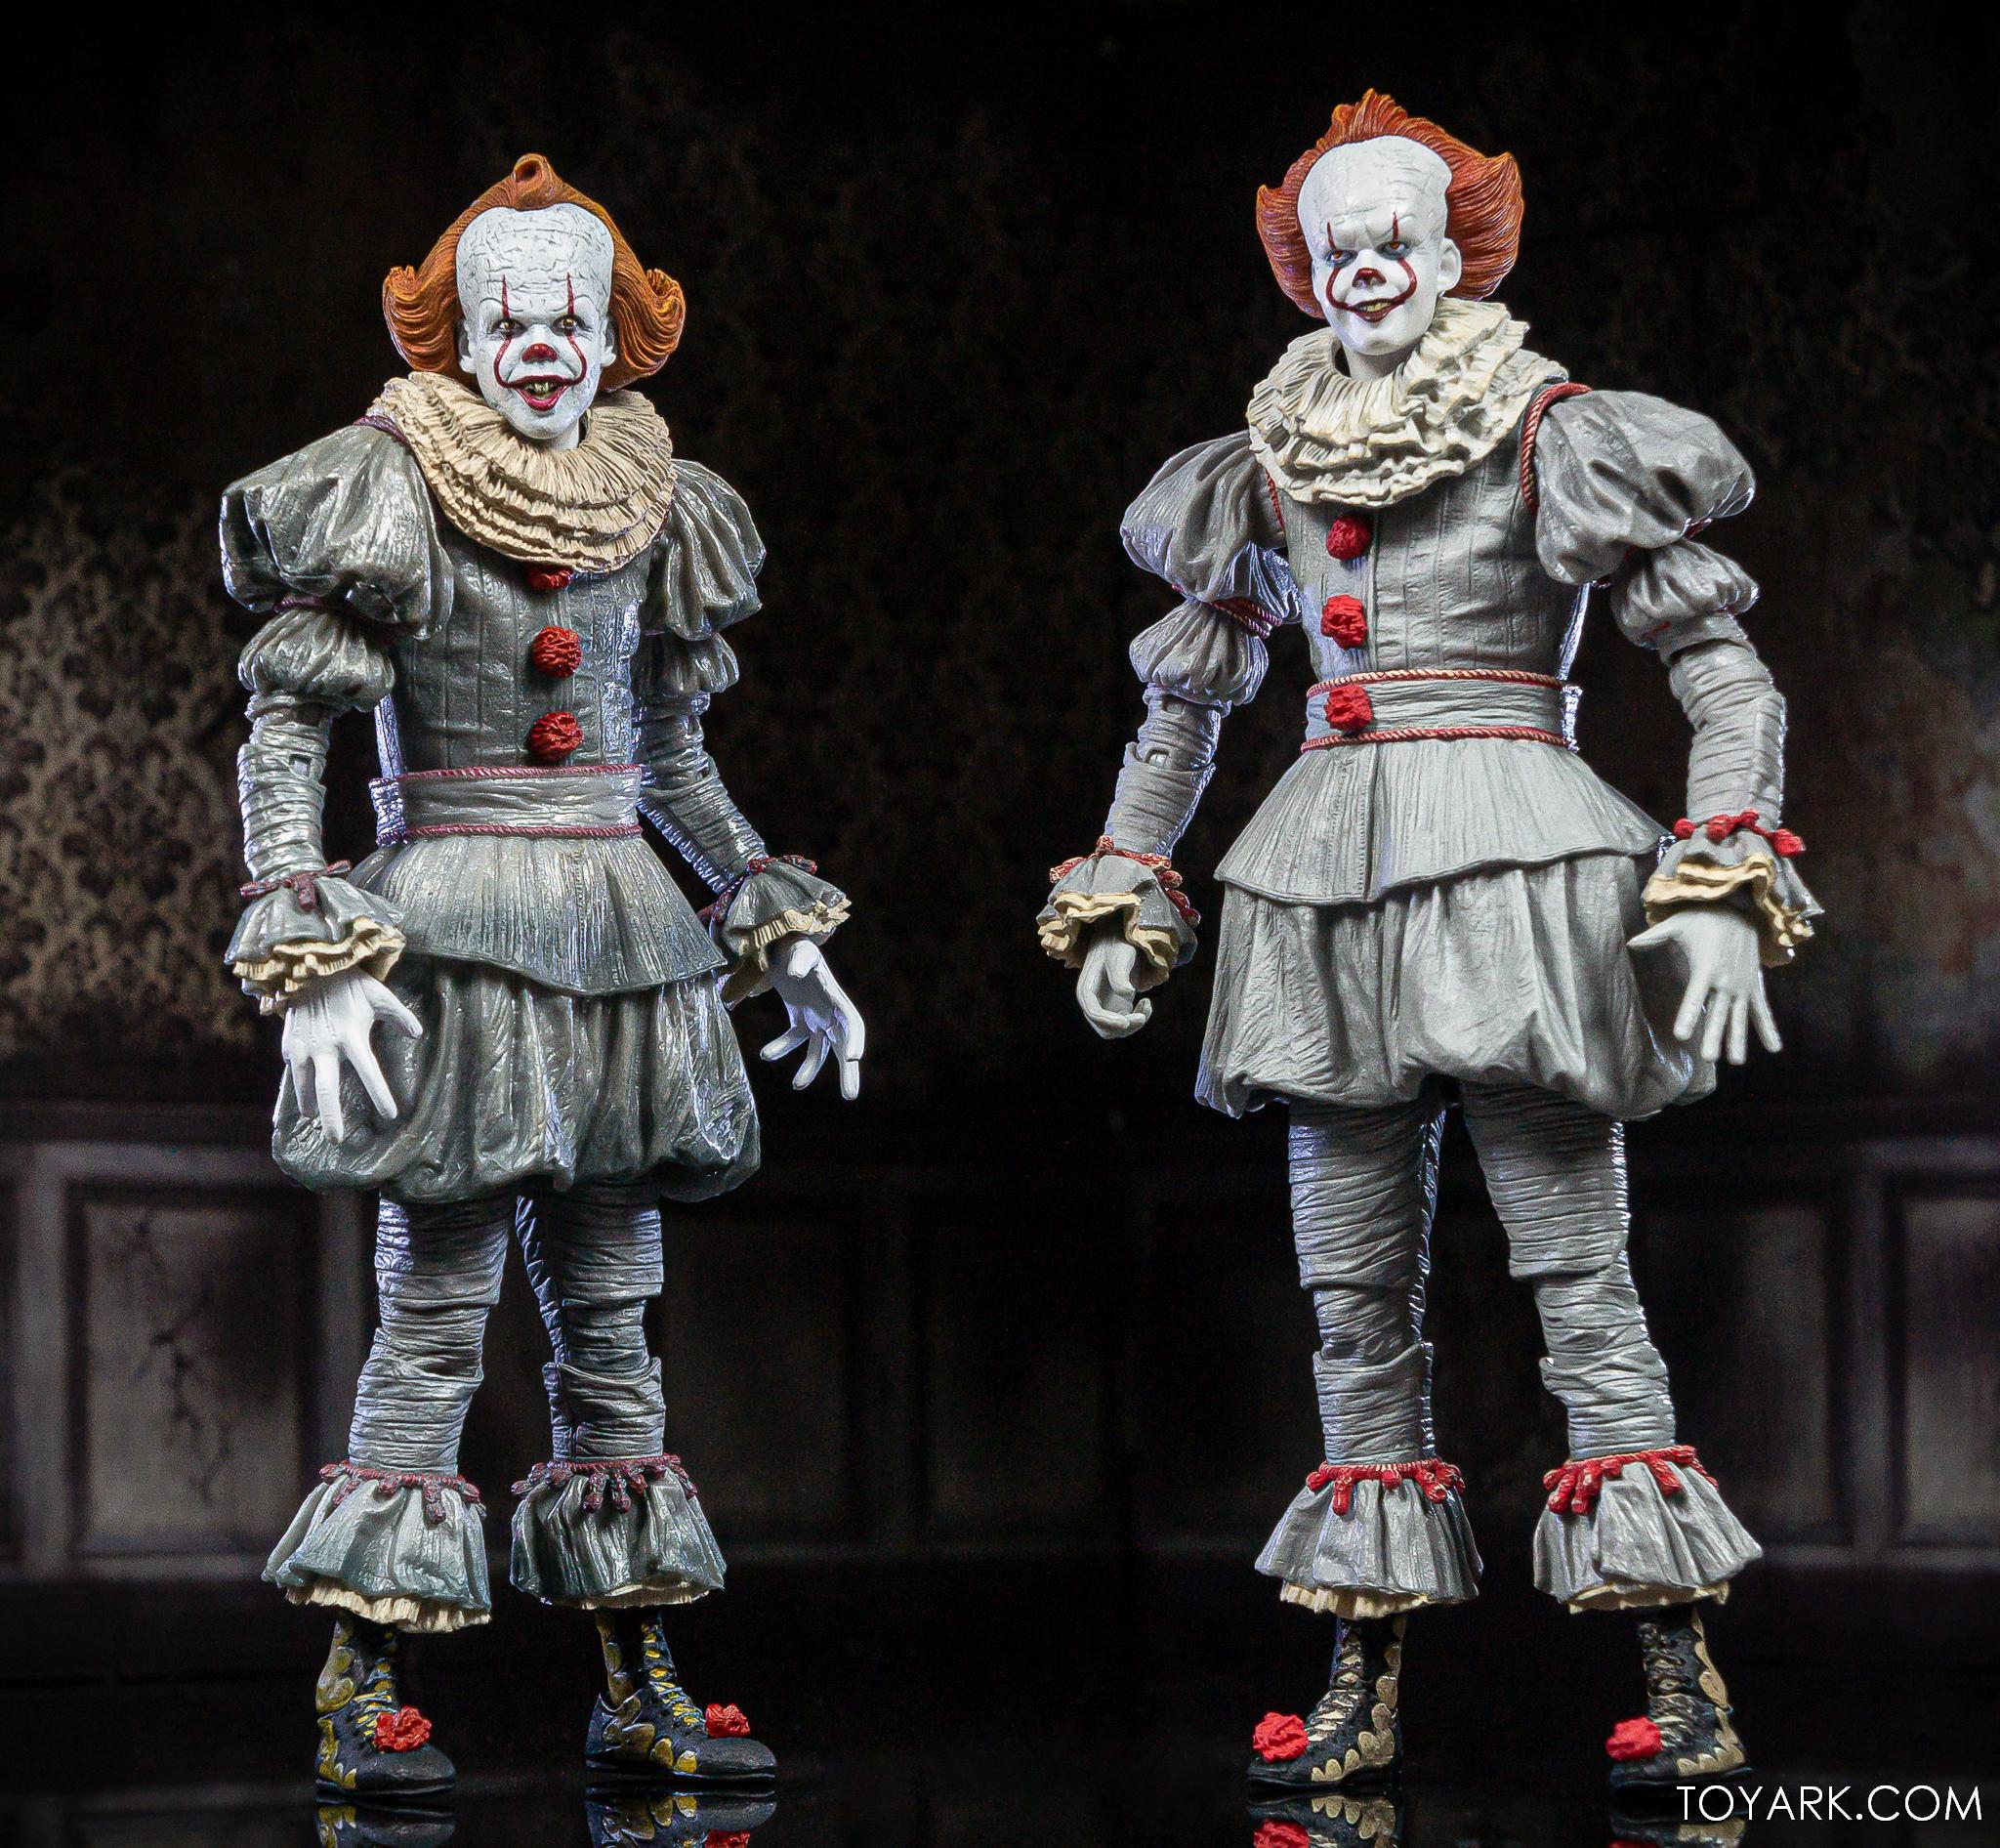 https://news.toyark.com/wp-content/uploads/sites/4/2020/06/NECA-IT-2-Ultimate-Pennywise-037.jpg